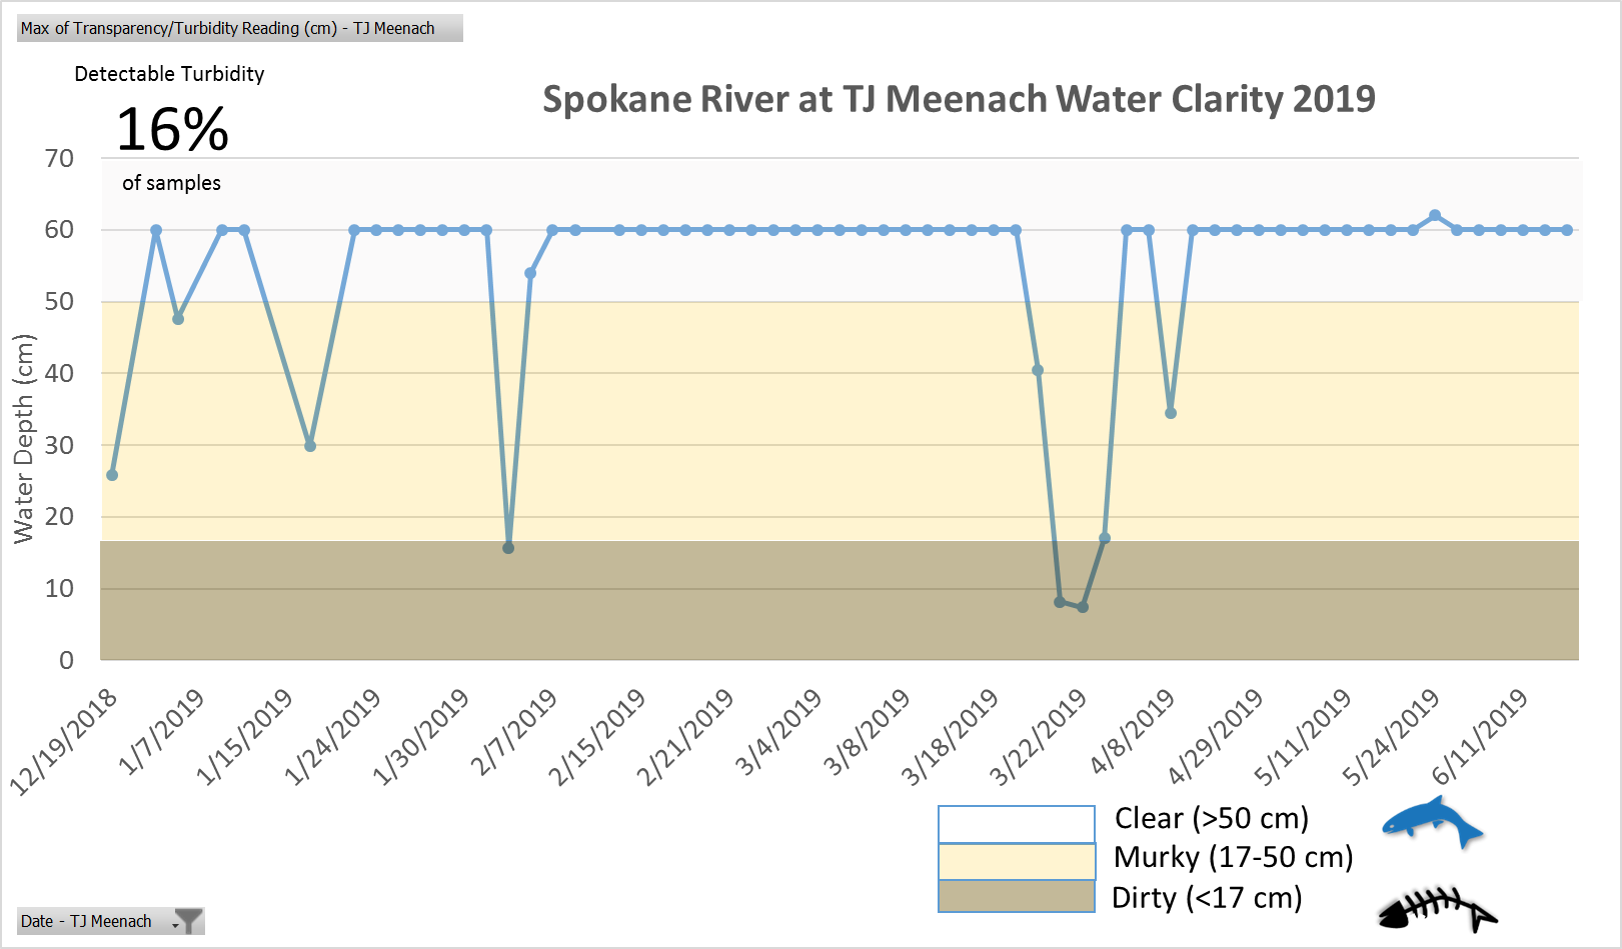 The pollution from Hangman Creek affected water clarity in the Spokane River at TJ Meenach Bridge about 16% of the time, with extreme events occurring during snow melt or rain on snow events.